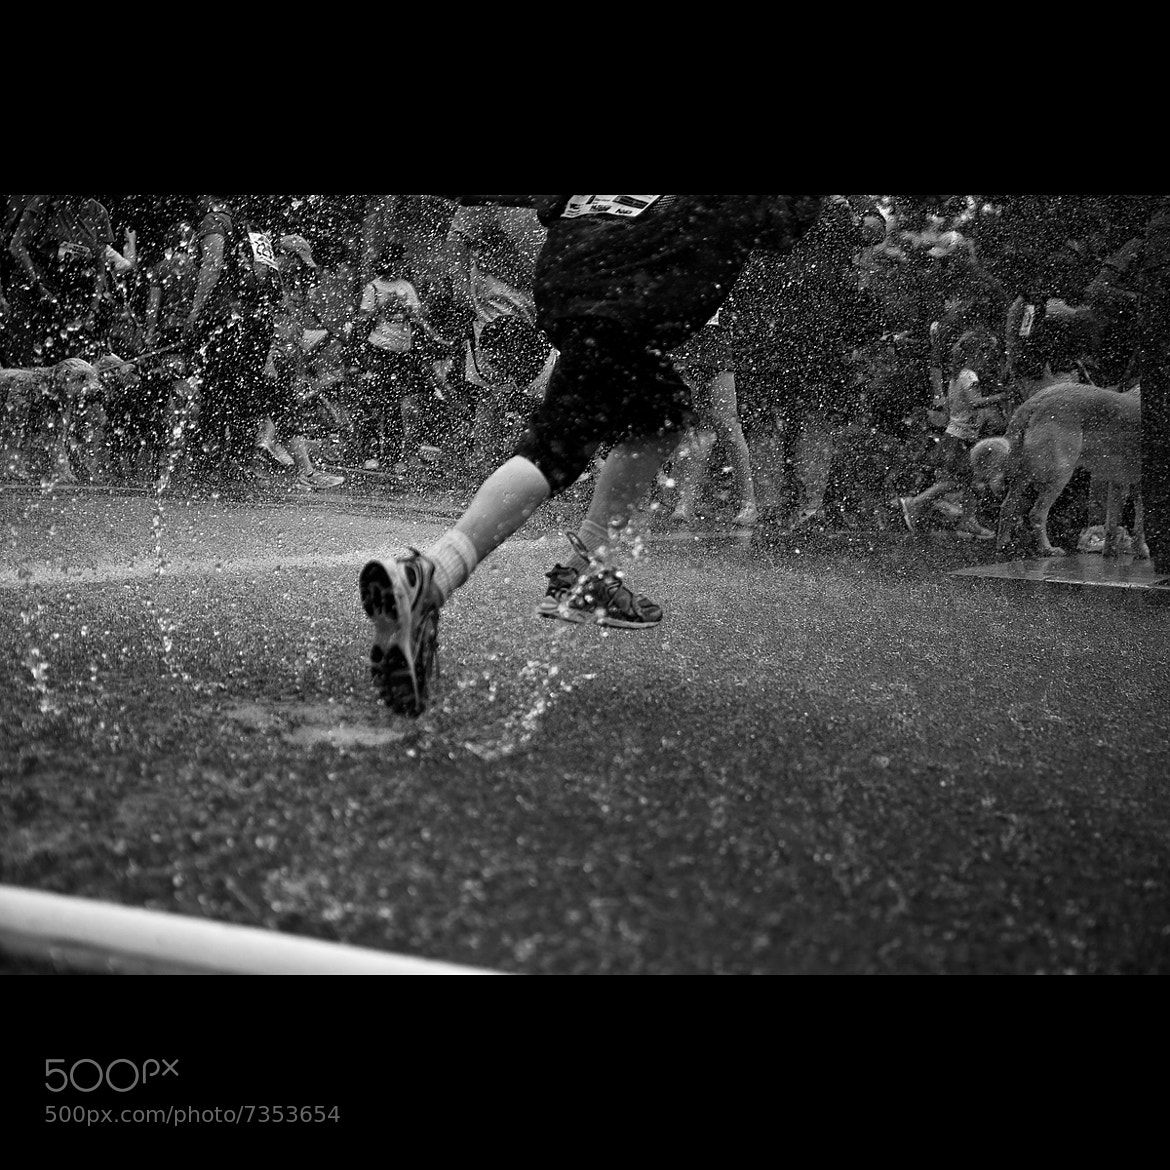 Photograph Splash by Michael Clausen on 500px